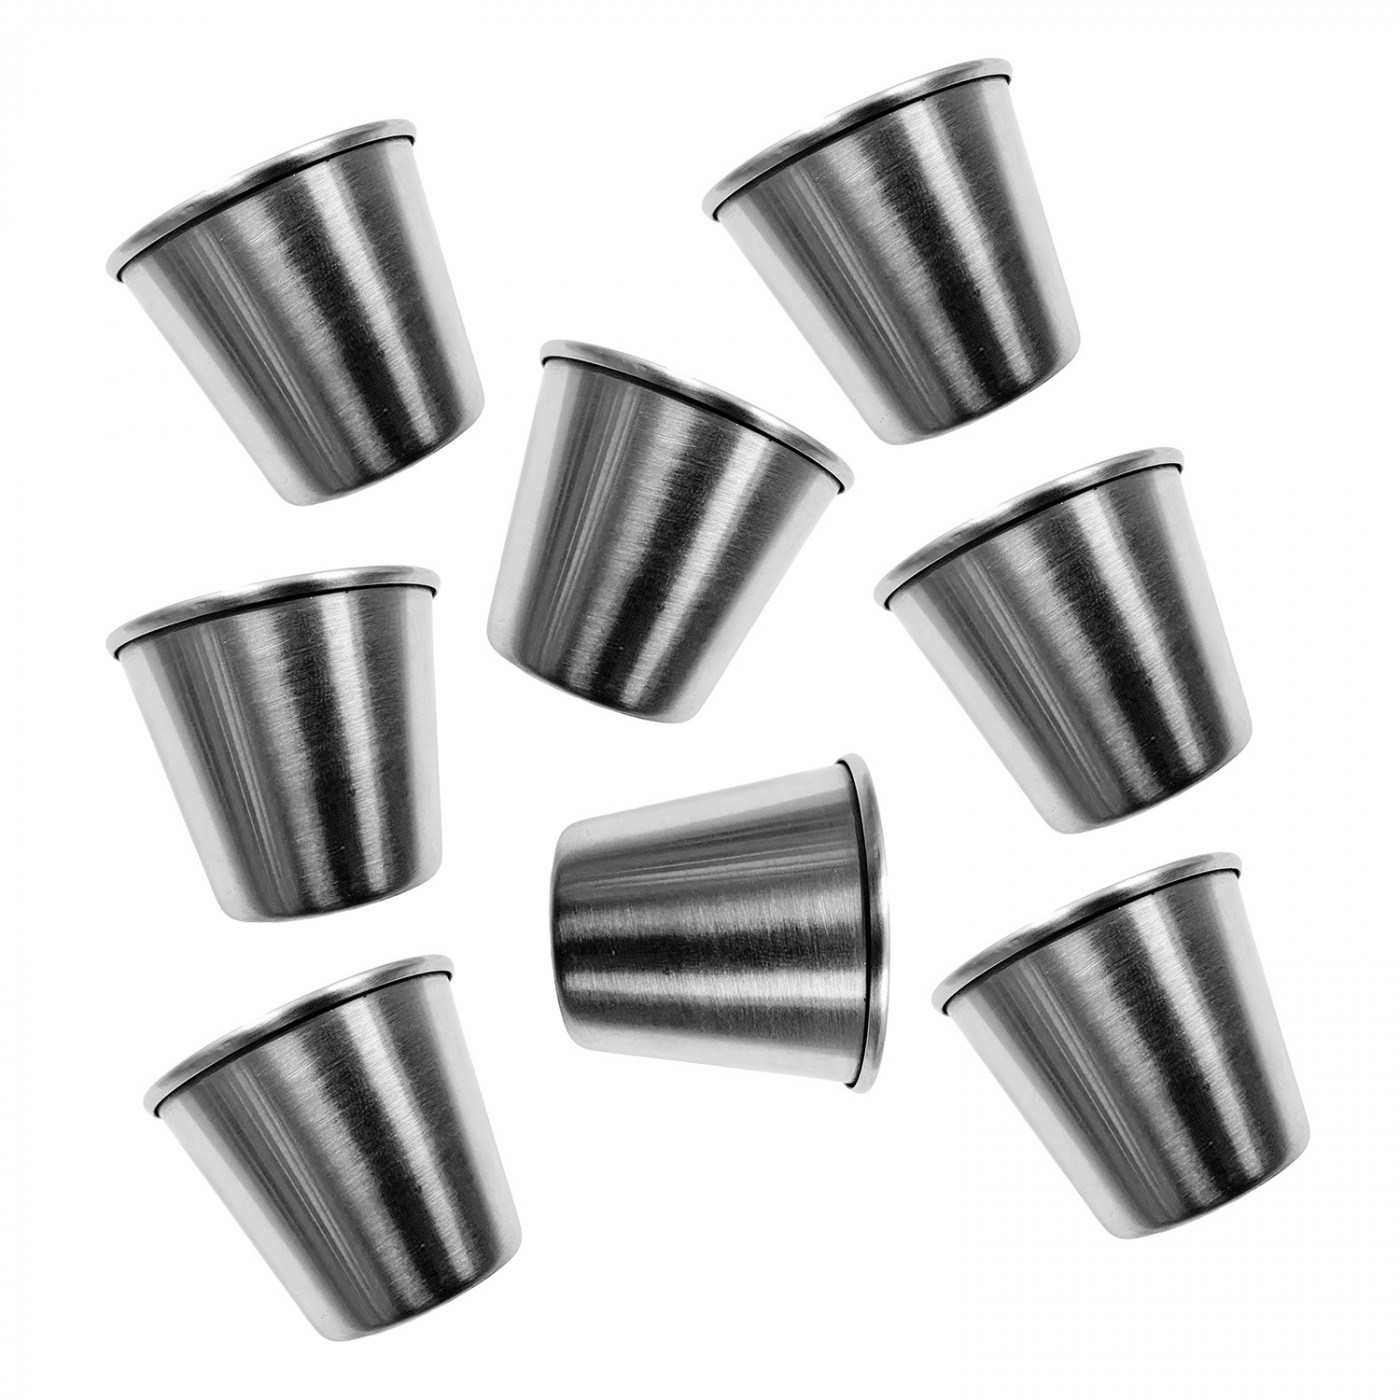 Set of 20 stainless steel cups, 44 ml  - 1